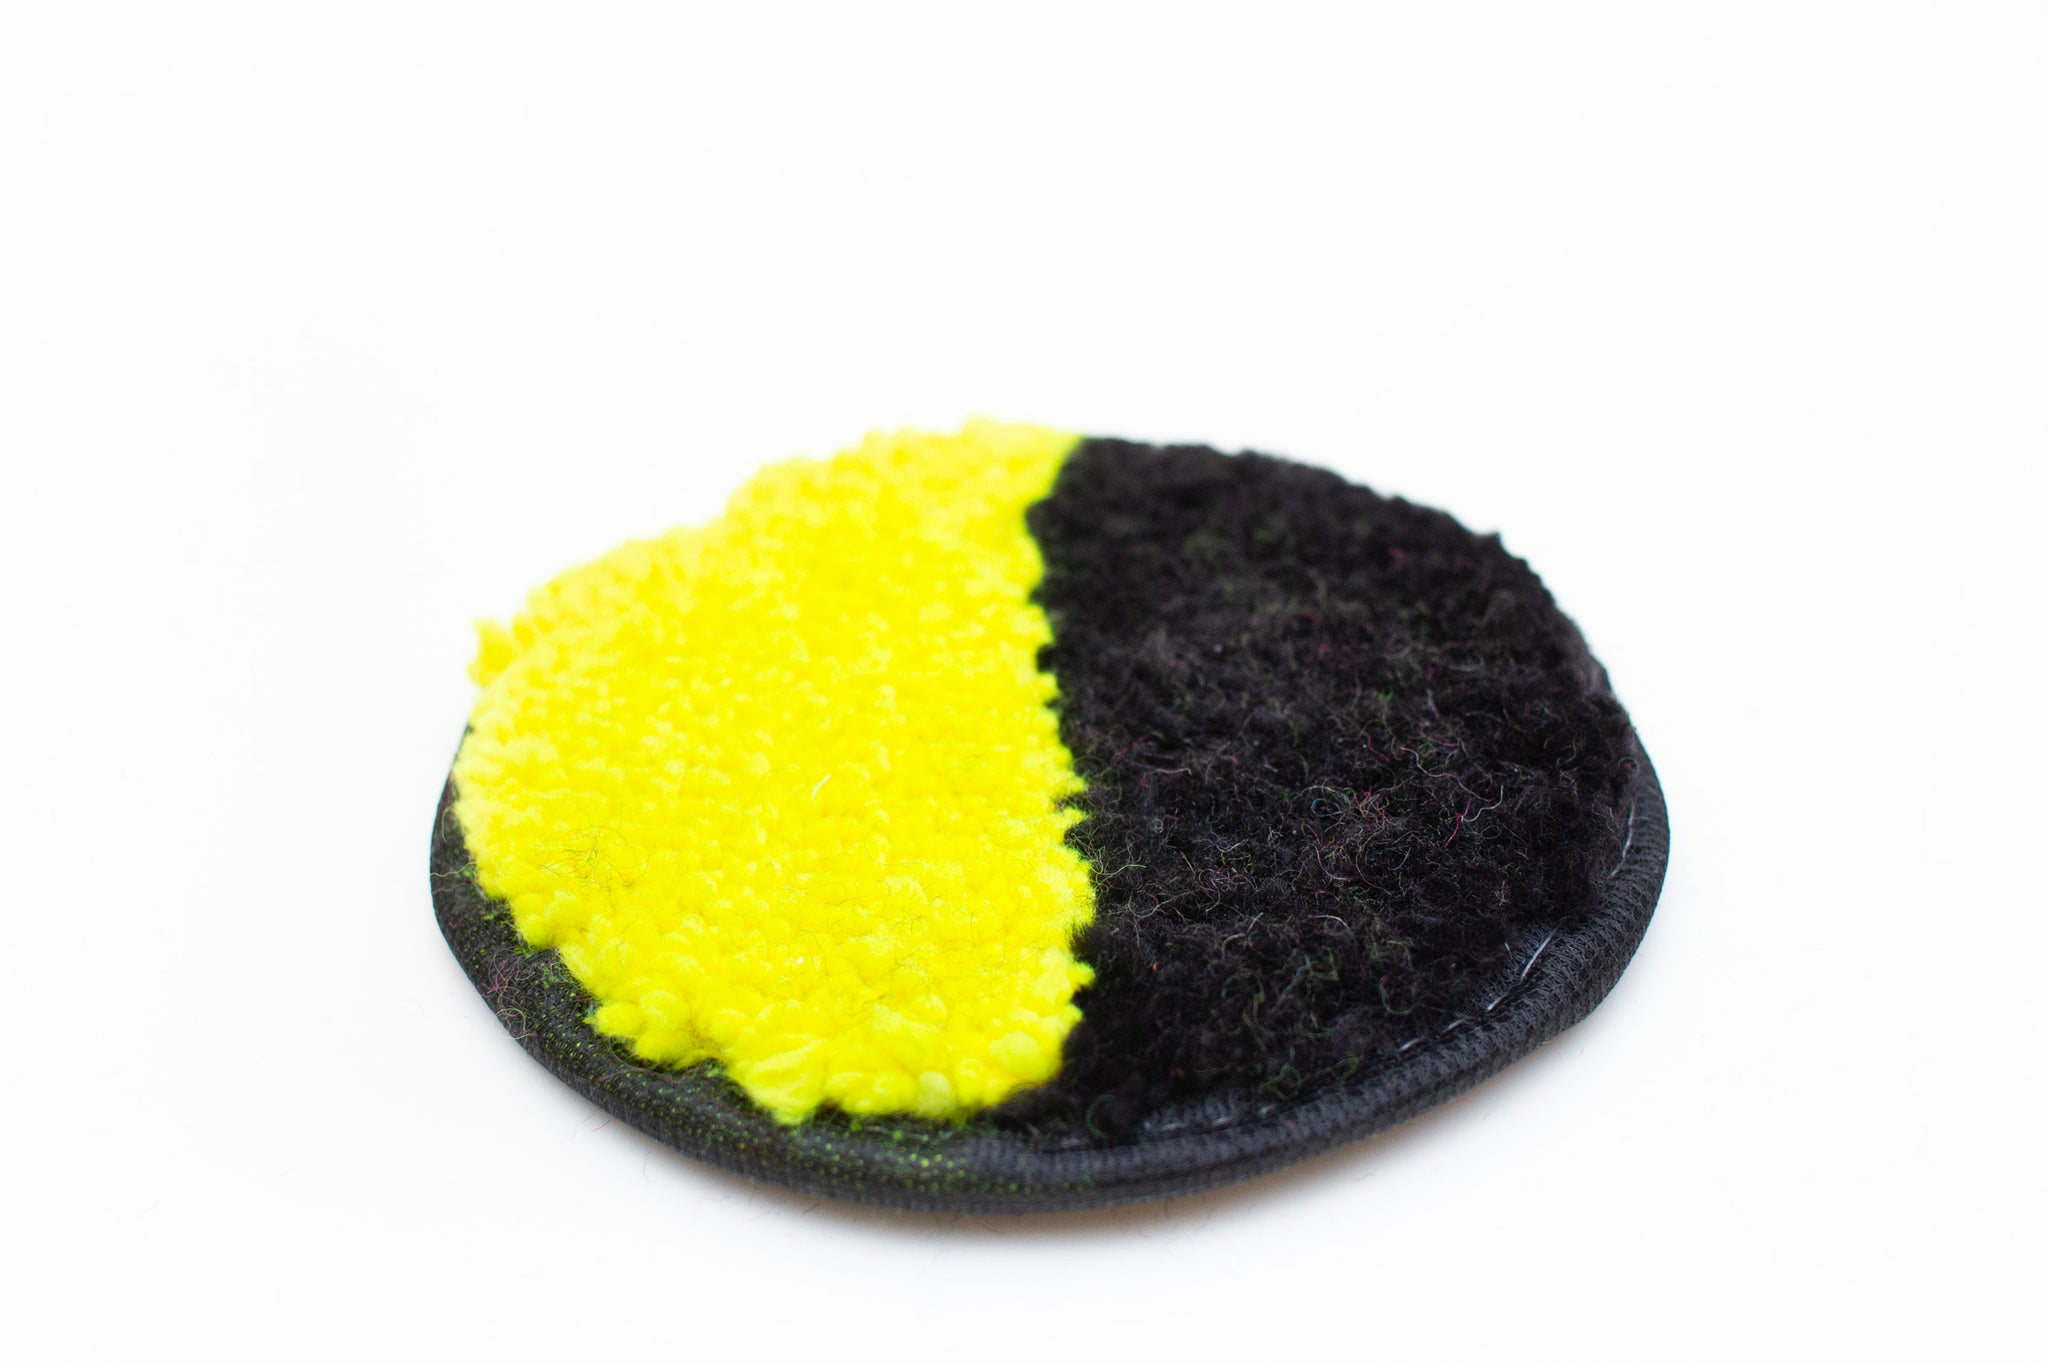 Mish Mash Coaster Half Black/Half Neon Yellow